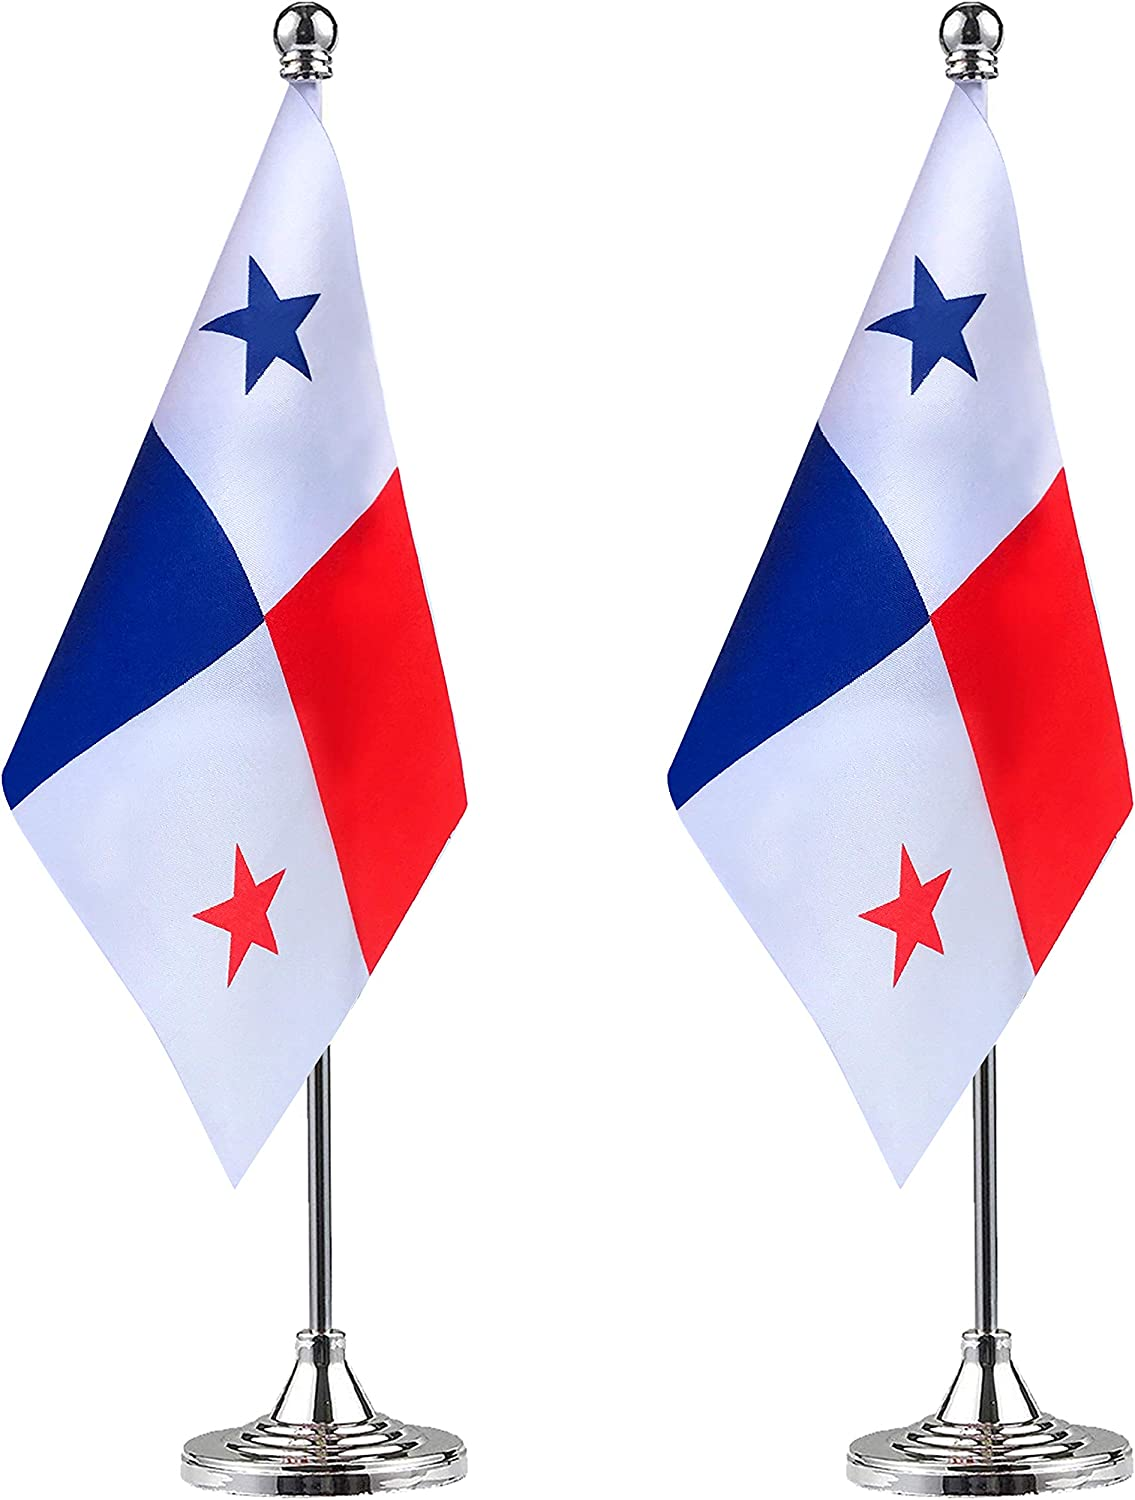 WEITBF Panama Desk Flag Small Mini Panamanian Office Table Flag with Stand Base,Panamanian Themed Party Decorations Celebration Event,2 Pack